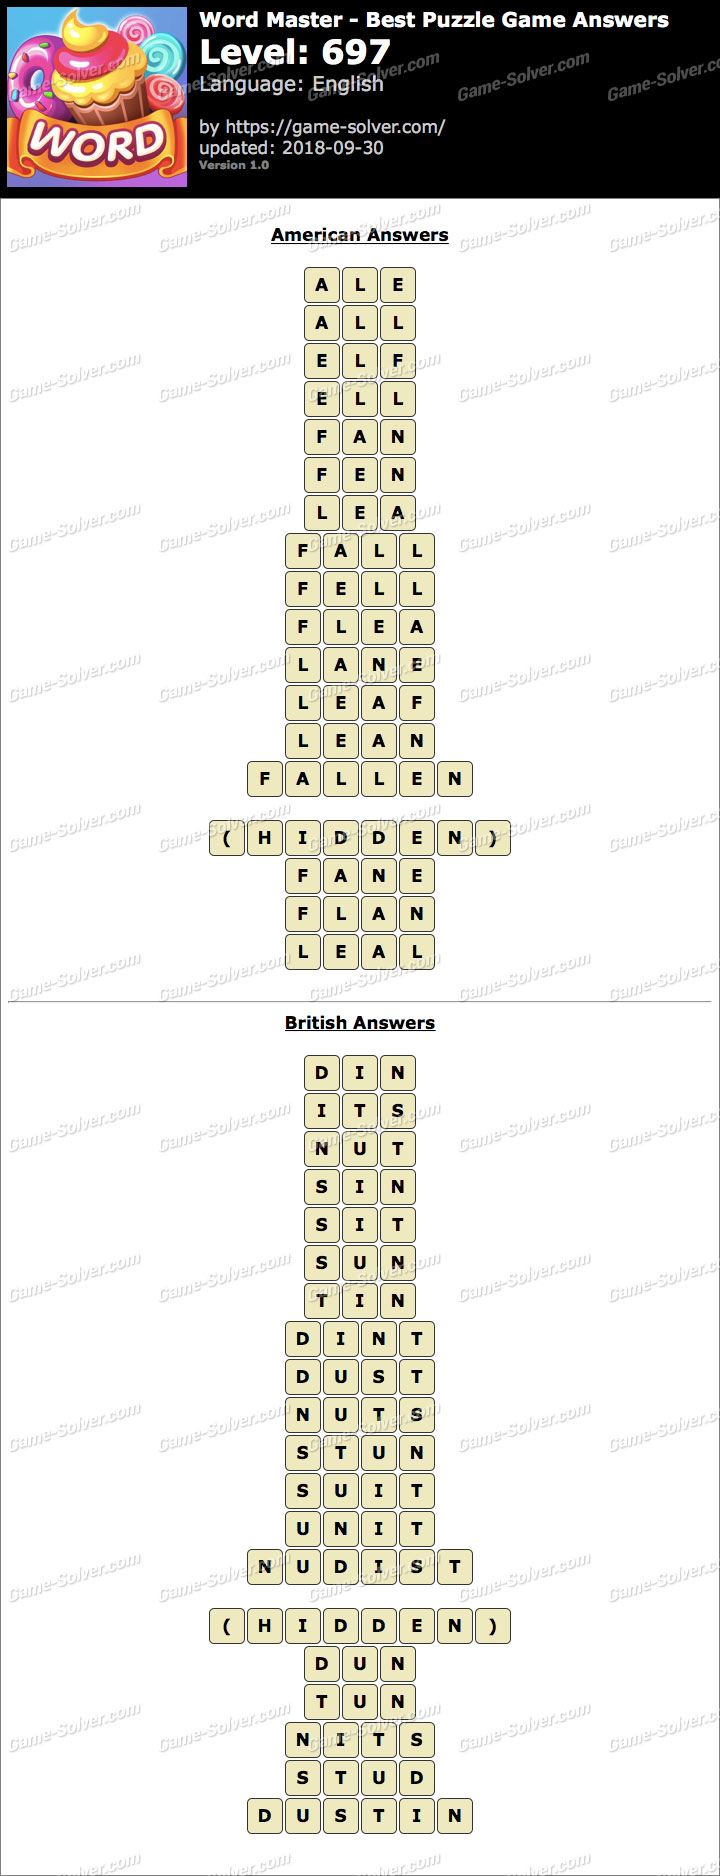 Word Master-Best Puzzle Game Level 697 Answers